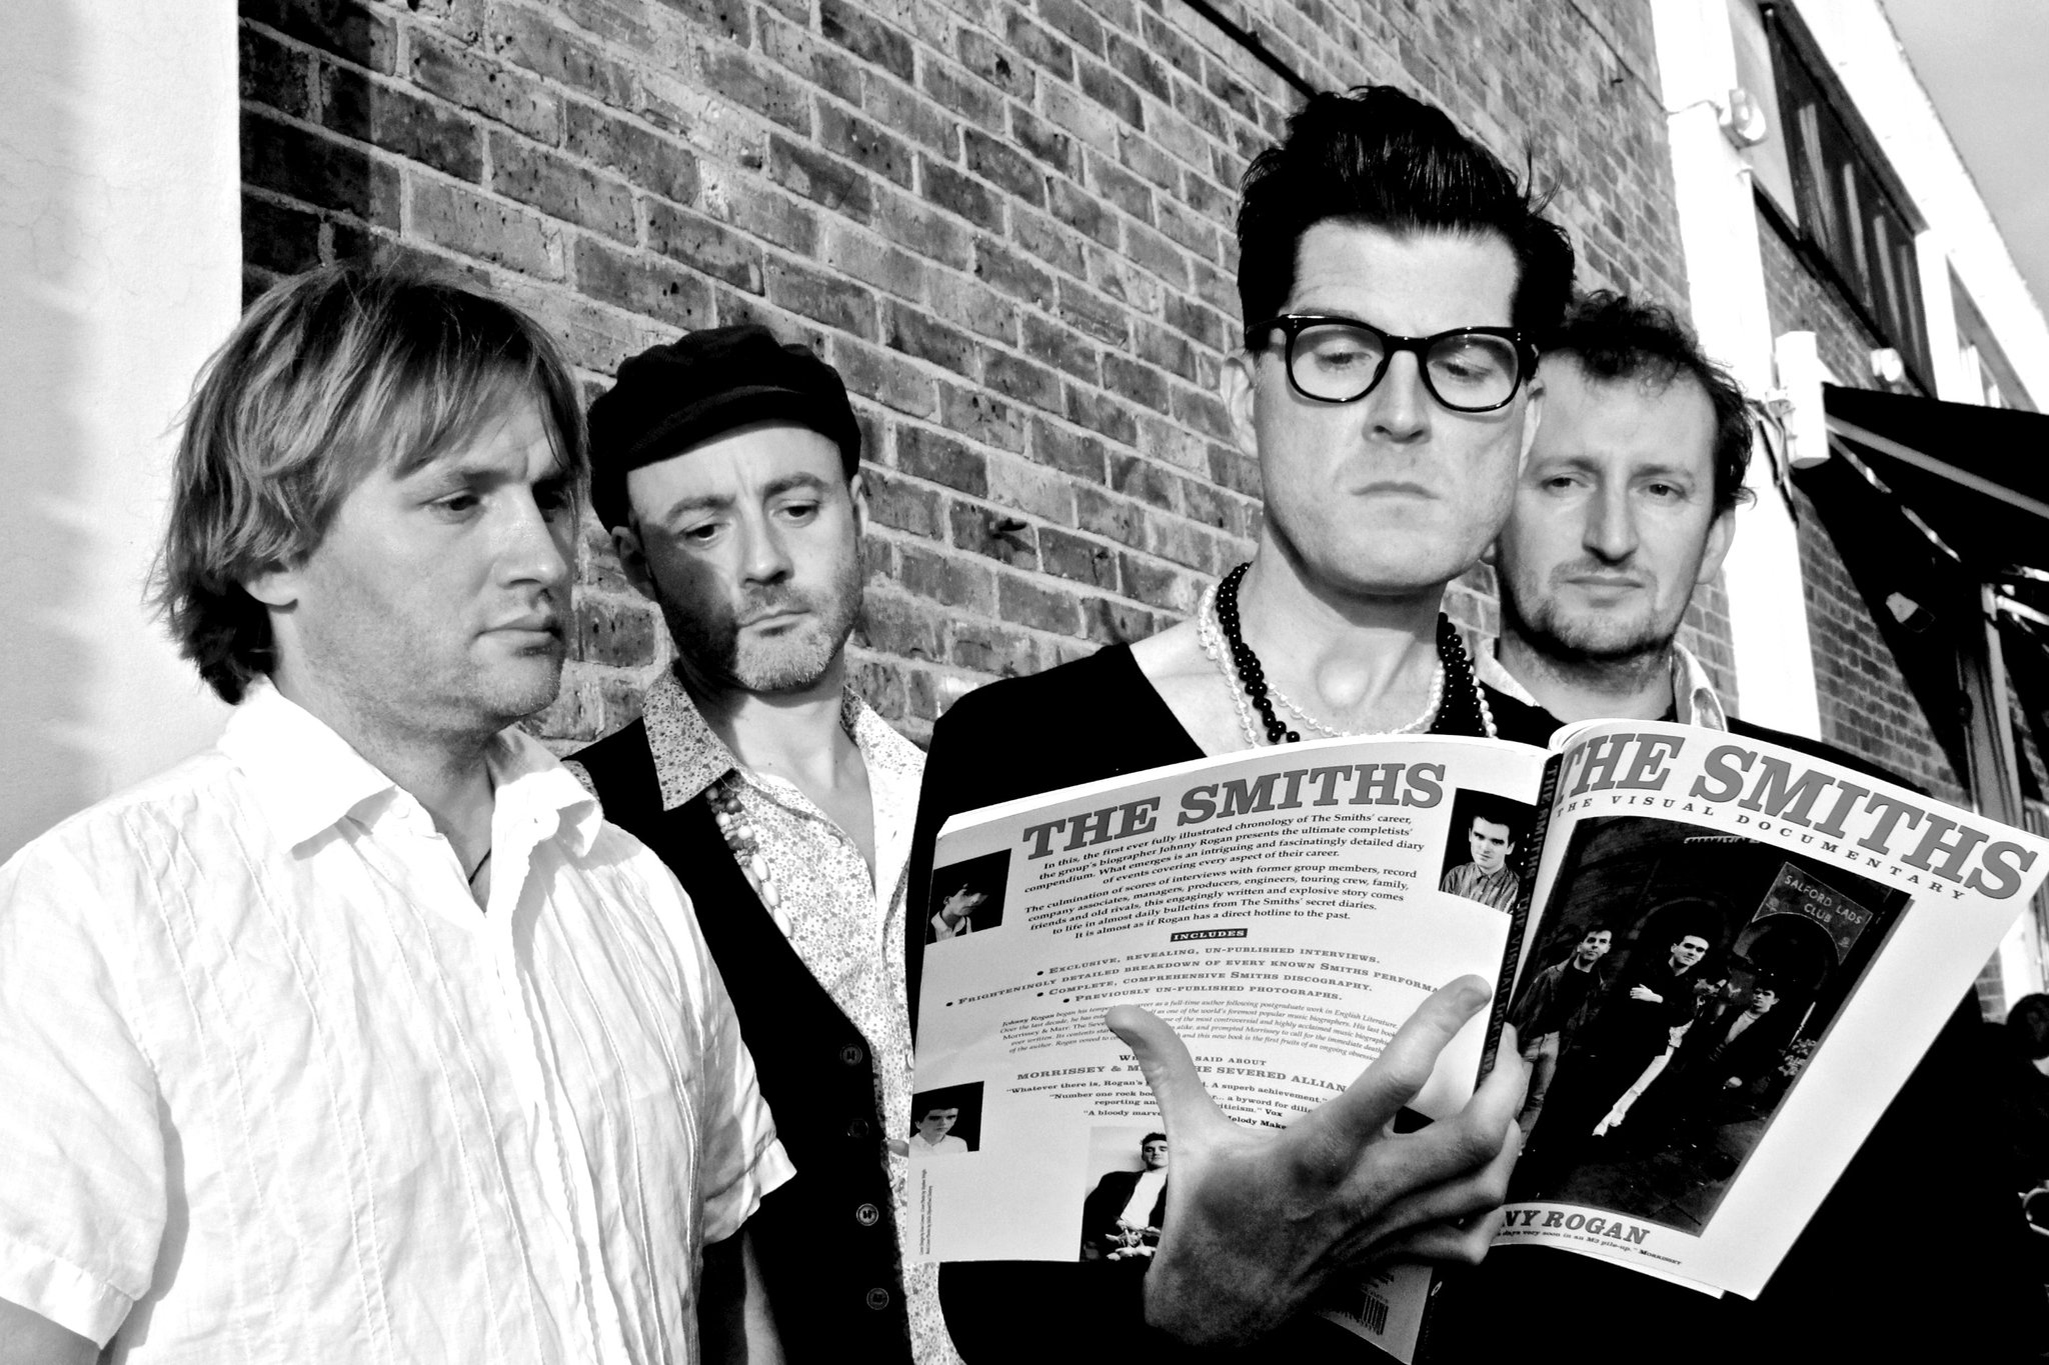 Tribute to The Smiths set to arrive in Paisley